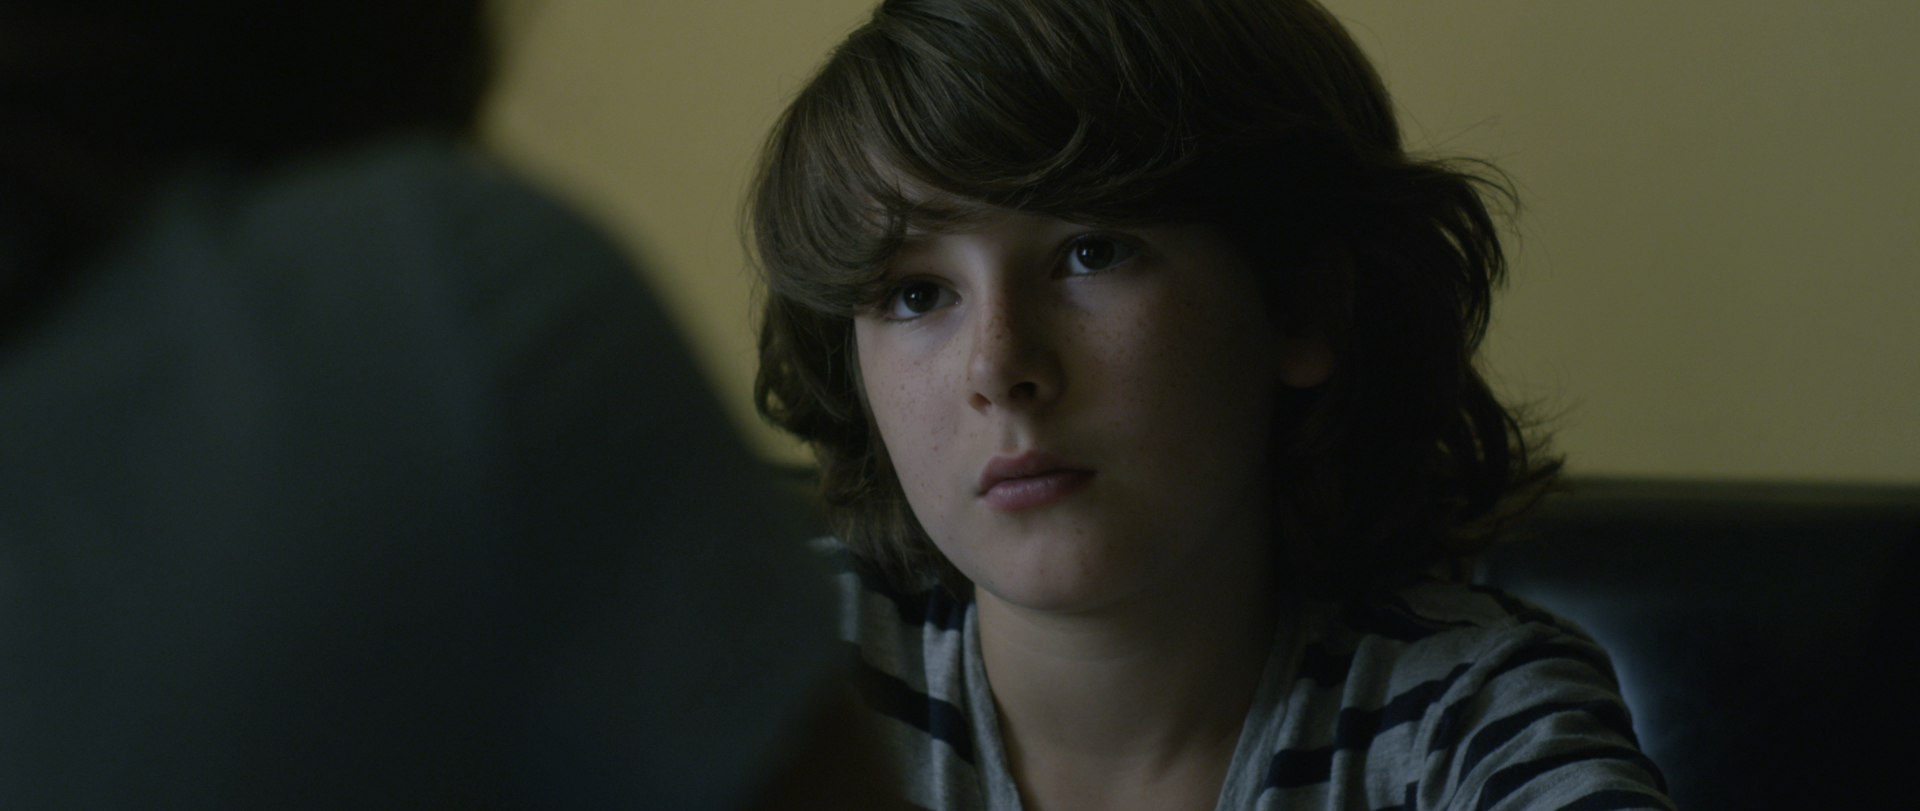 Zev Haworth as Connor